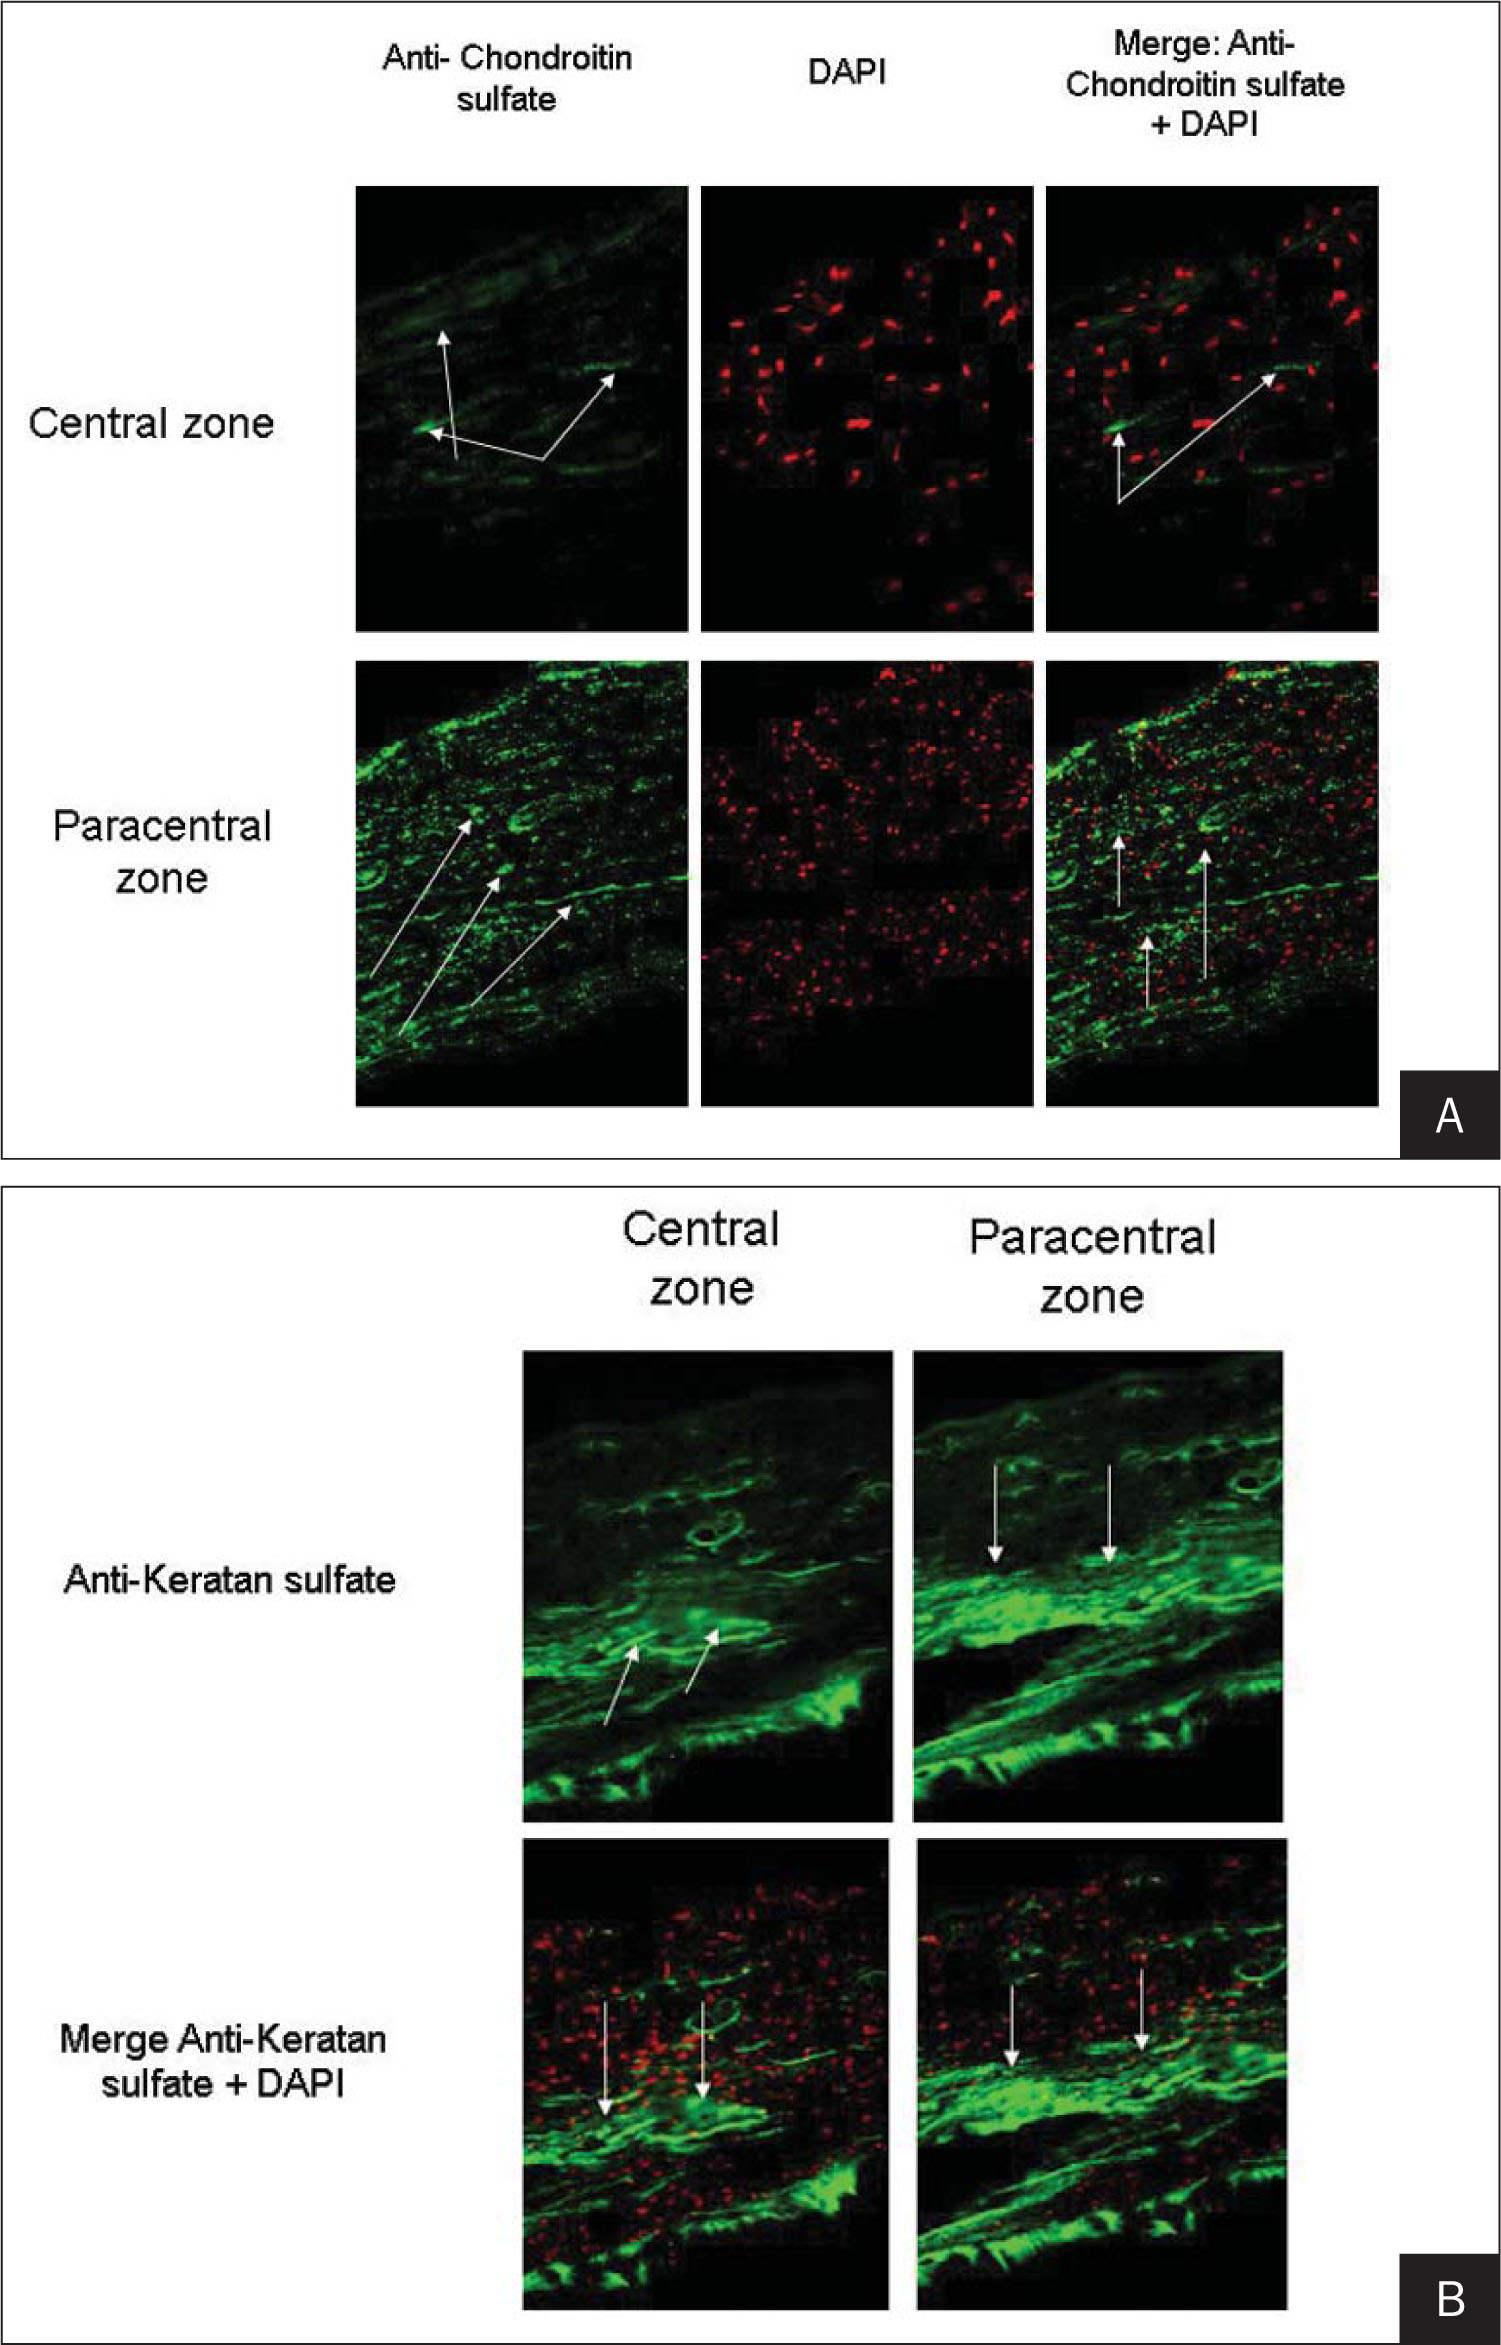 A) Increased expression of chon-droitin sulfate (arrows) is observed in the central zone (upper panels) compared with the paracentral corneal flap edge (lower panels). Left panels show the expression of chondroitin sulfate. Middle panels demonstrate 4′6-diamidino-2-phenylindole (DAPI) nuclear counterstaining (red cells). Right panels show a merge of both stains. B) Increased expression of keratan sulfate (arrows) is observed in the central zone (left panels) compared with the paracentral corneal flap edge (right panels). Upper panels show the expression of keratan sulfate. Lower panels illustrate a merge of keratan sulfate and DAPI nuclear counterstaining (red cells).